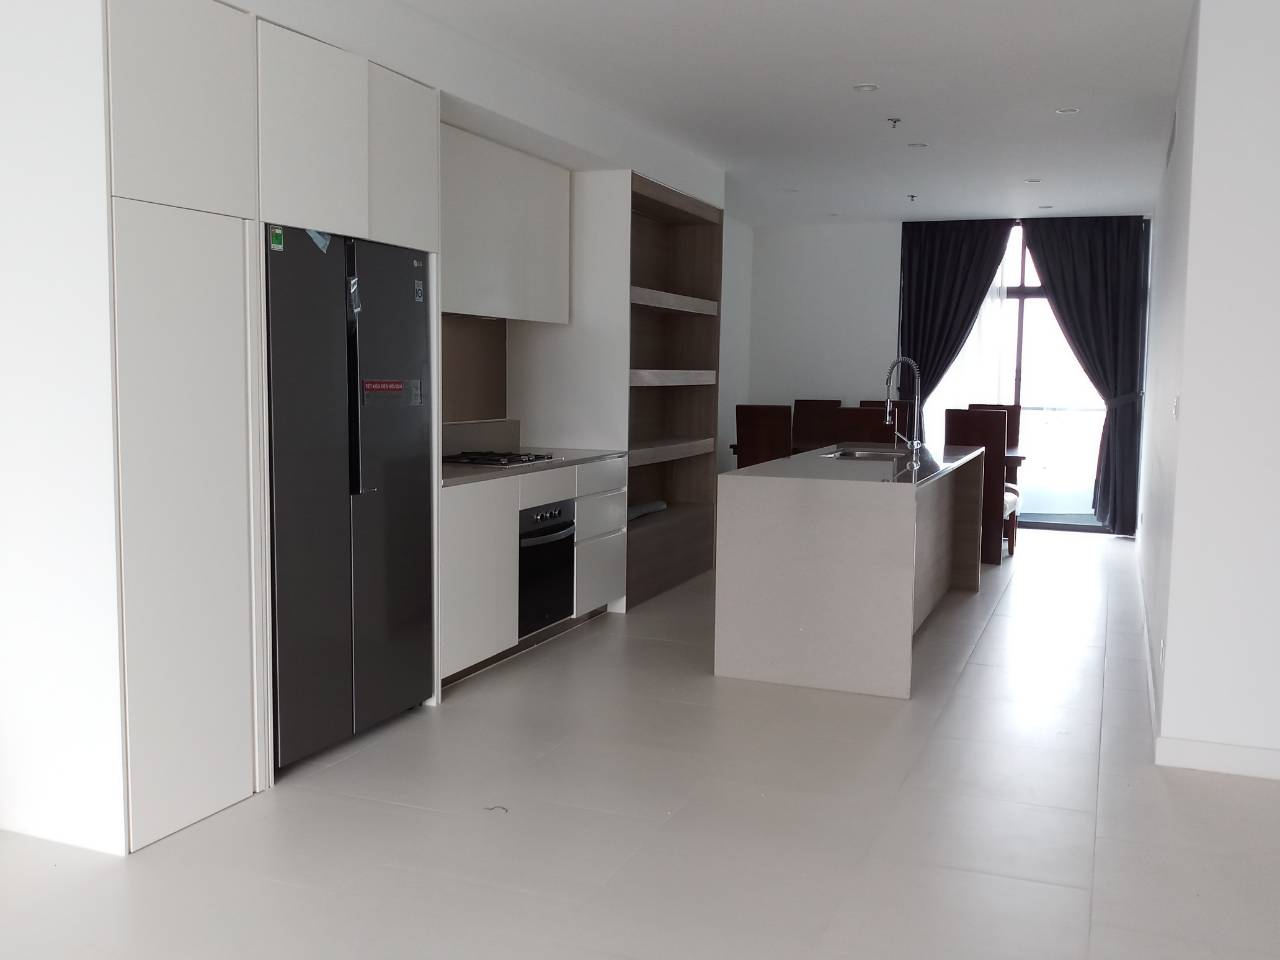 city garden apartment for rent in binh thanh district hcmc BT102742 (3)